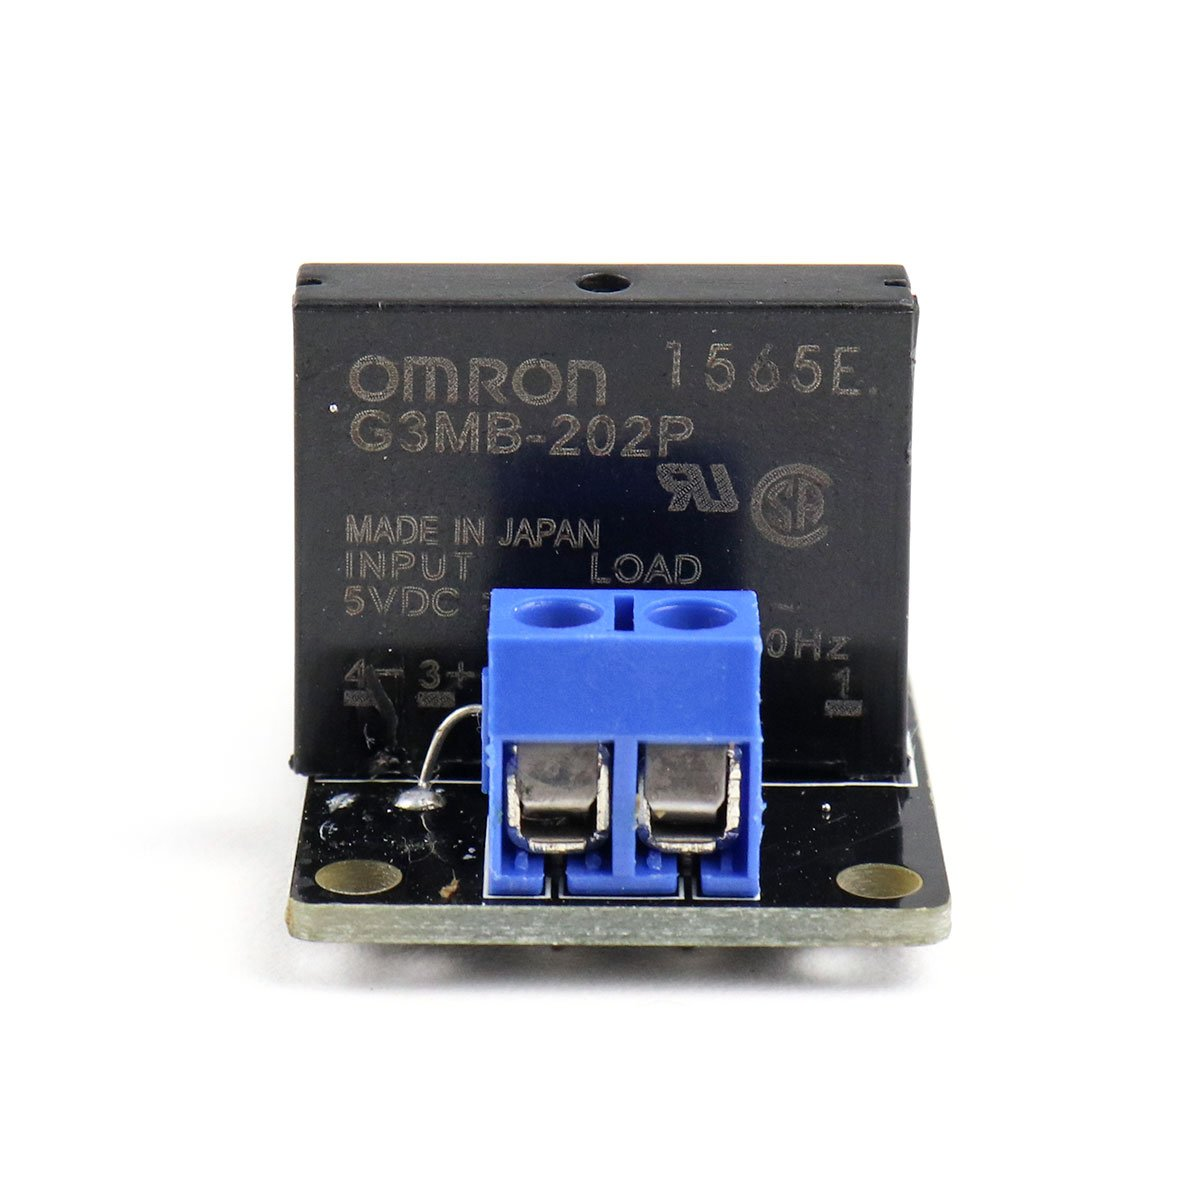 A03B 1 Road 5v Low Level Solid State Relay Module with Fuse SSR 250V 2A Fuse